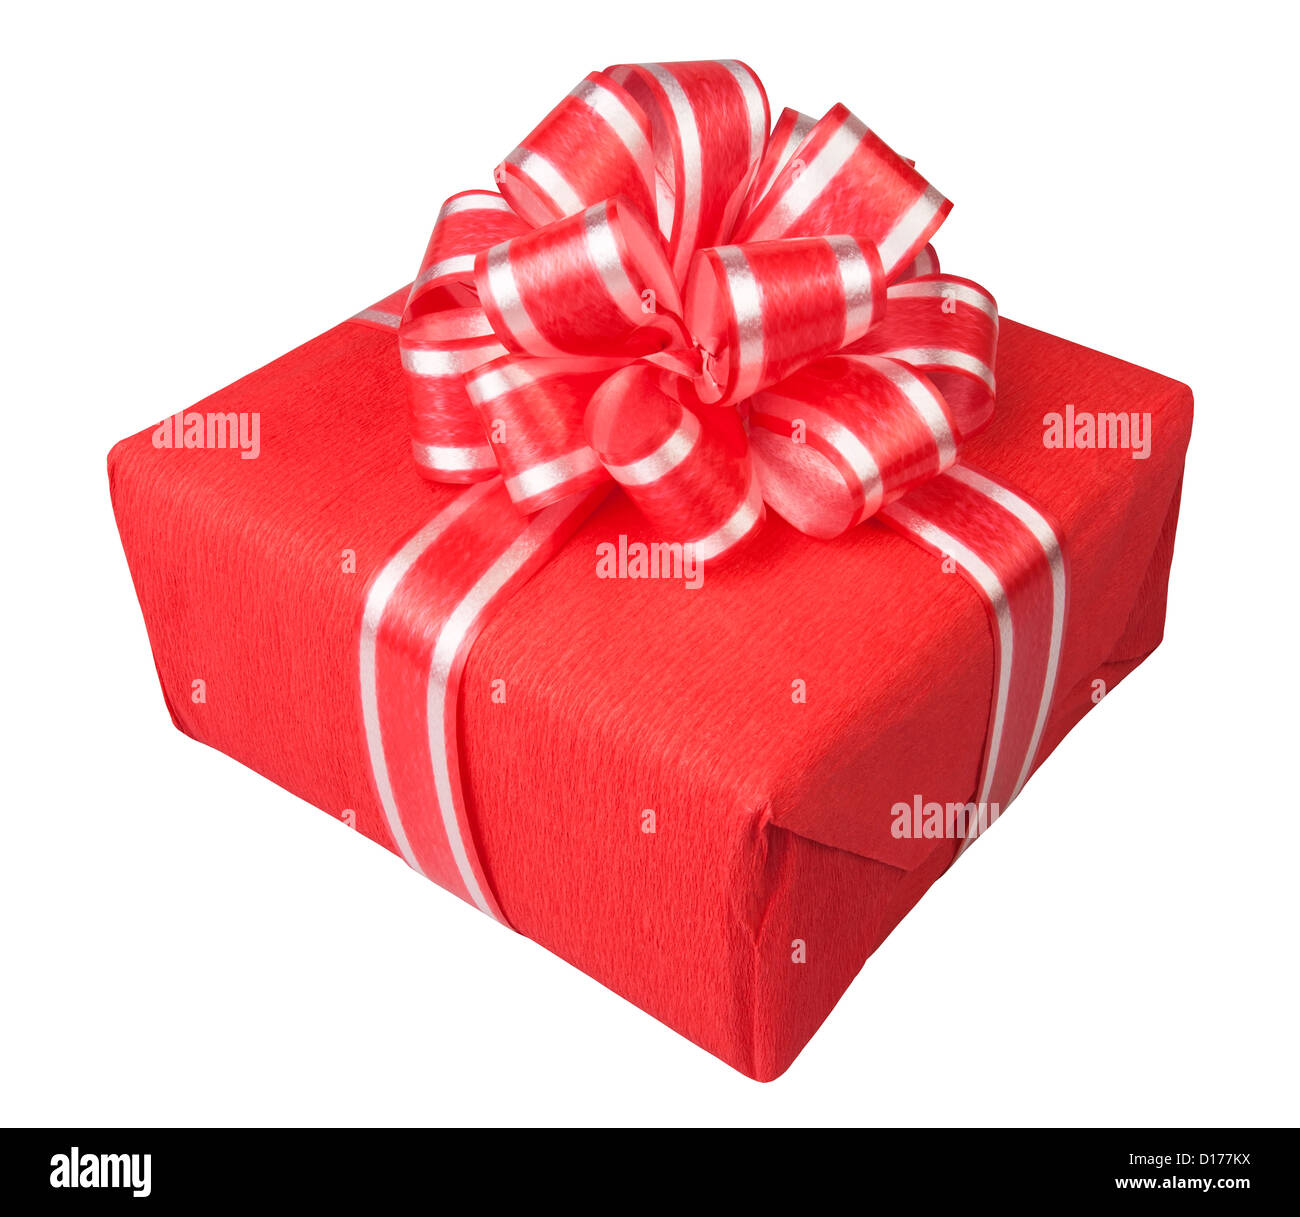 gift box present red on white background - Stock Image